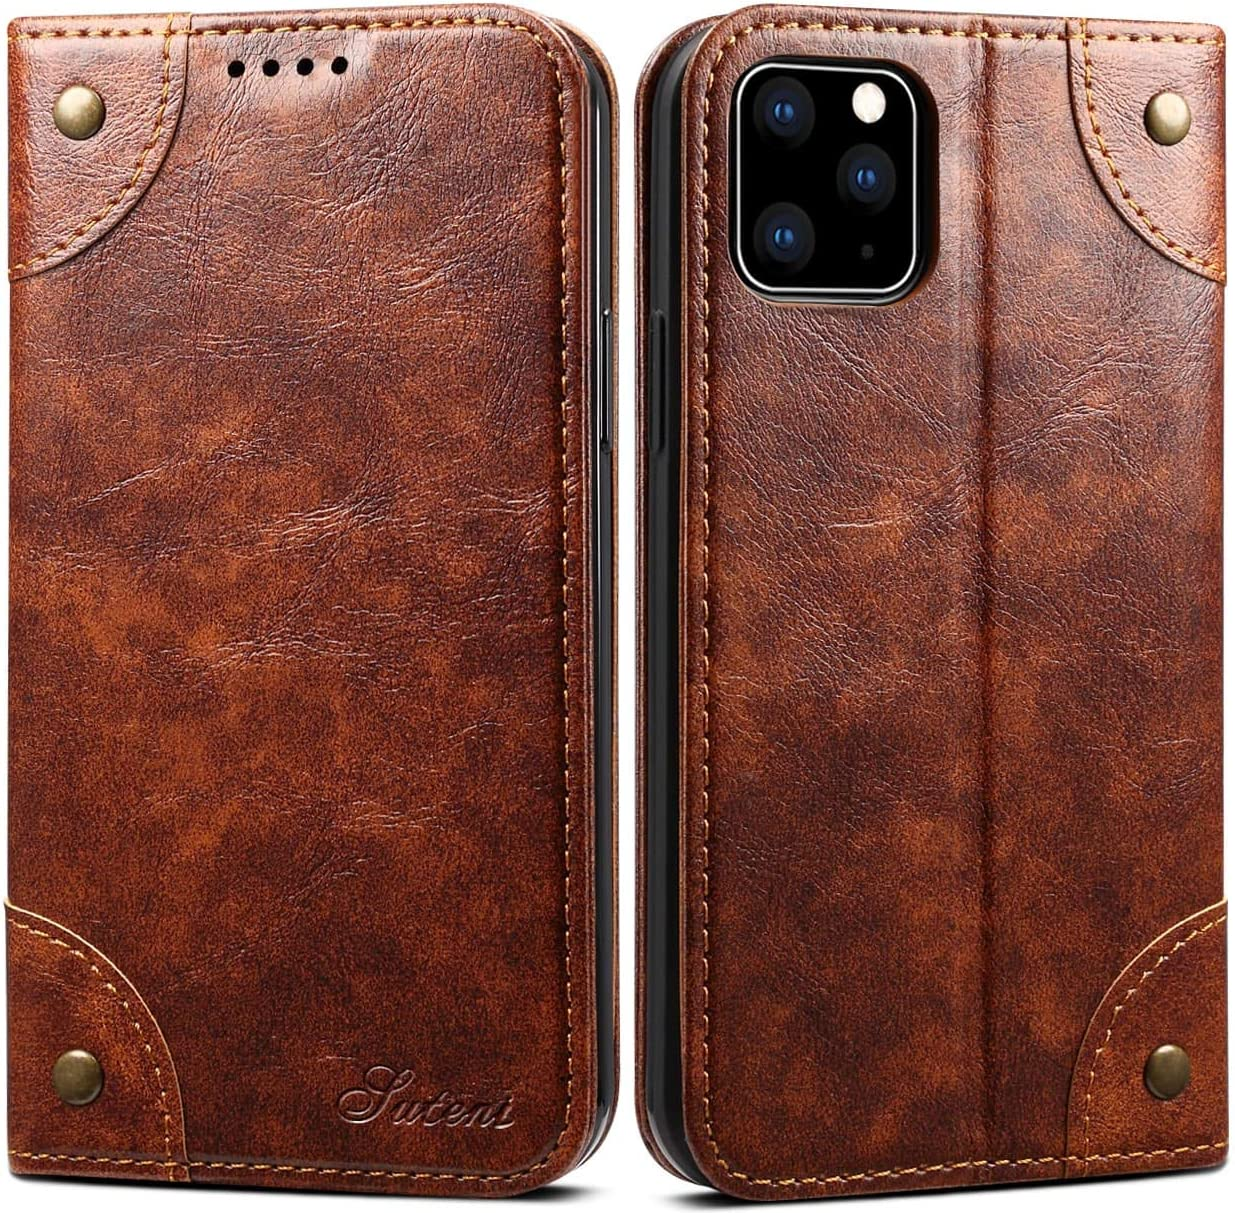 iPhone 11 Leather Case, SINIANL iPhone 11 Wallet Folio Case Book Design Magnetic Closure with Stand and ID Holder Credit Card Slots for Apple iPhone 11 6.1 inch 2019 Khaki